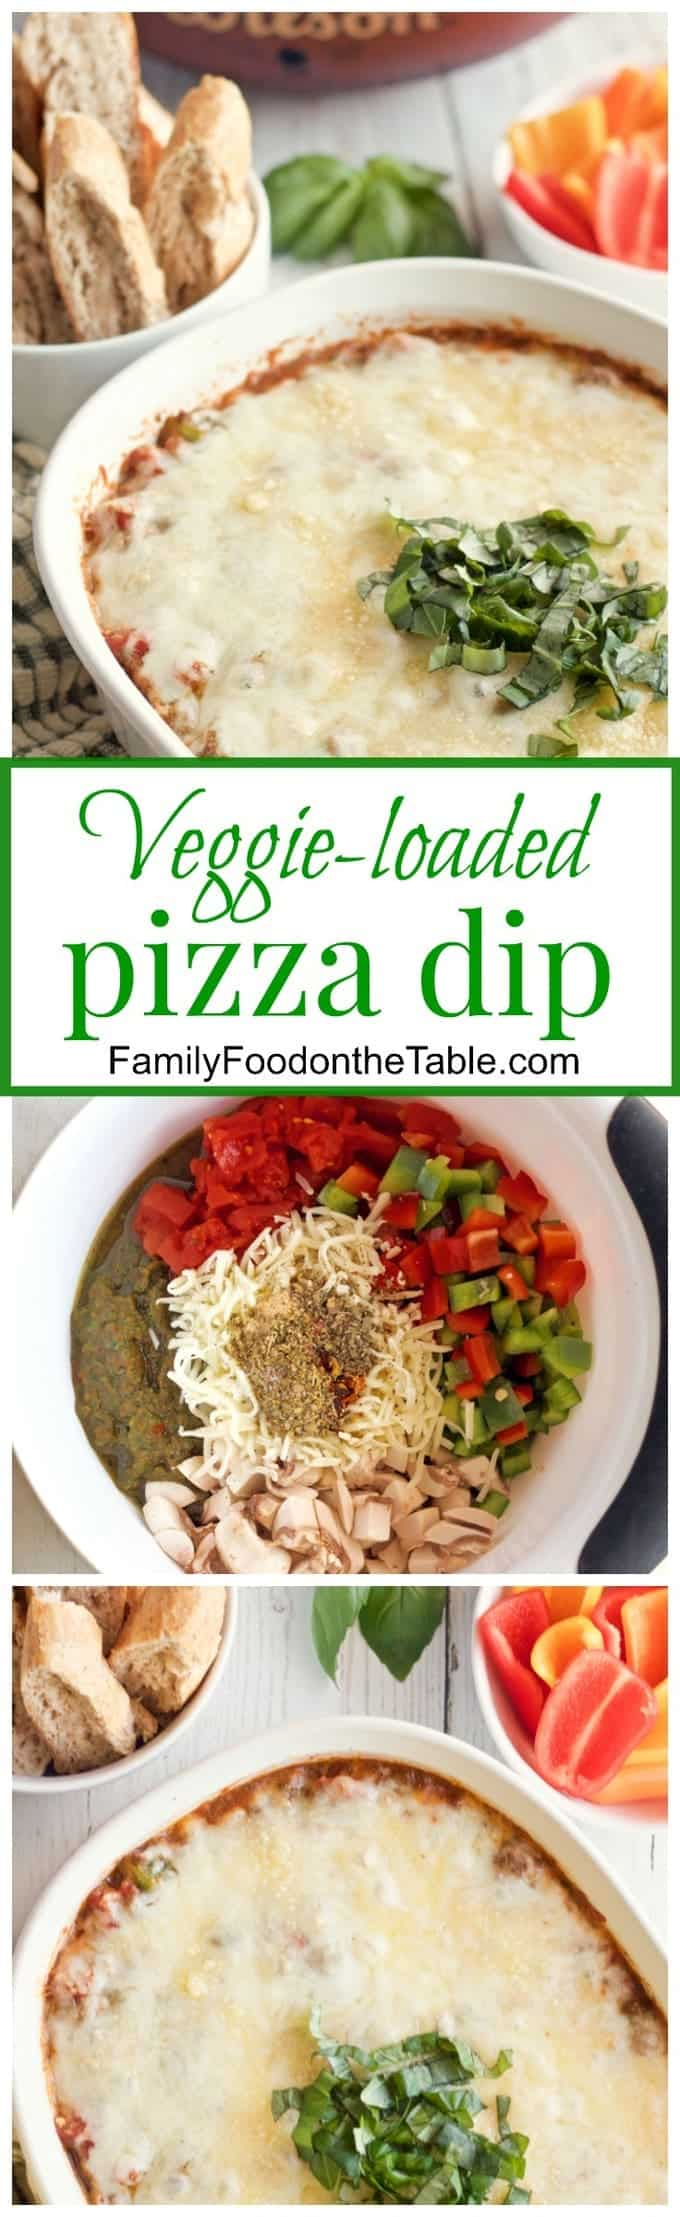 A super cheesy veggie-packed pizza dip, perfect for game day or party nights!